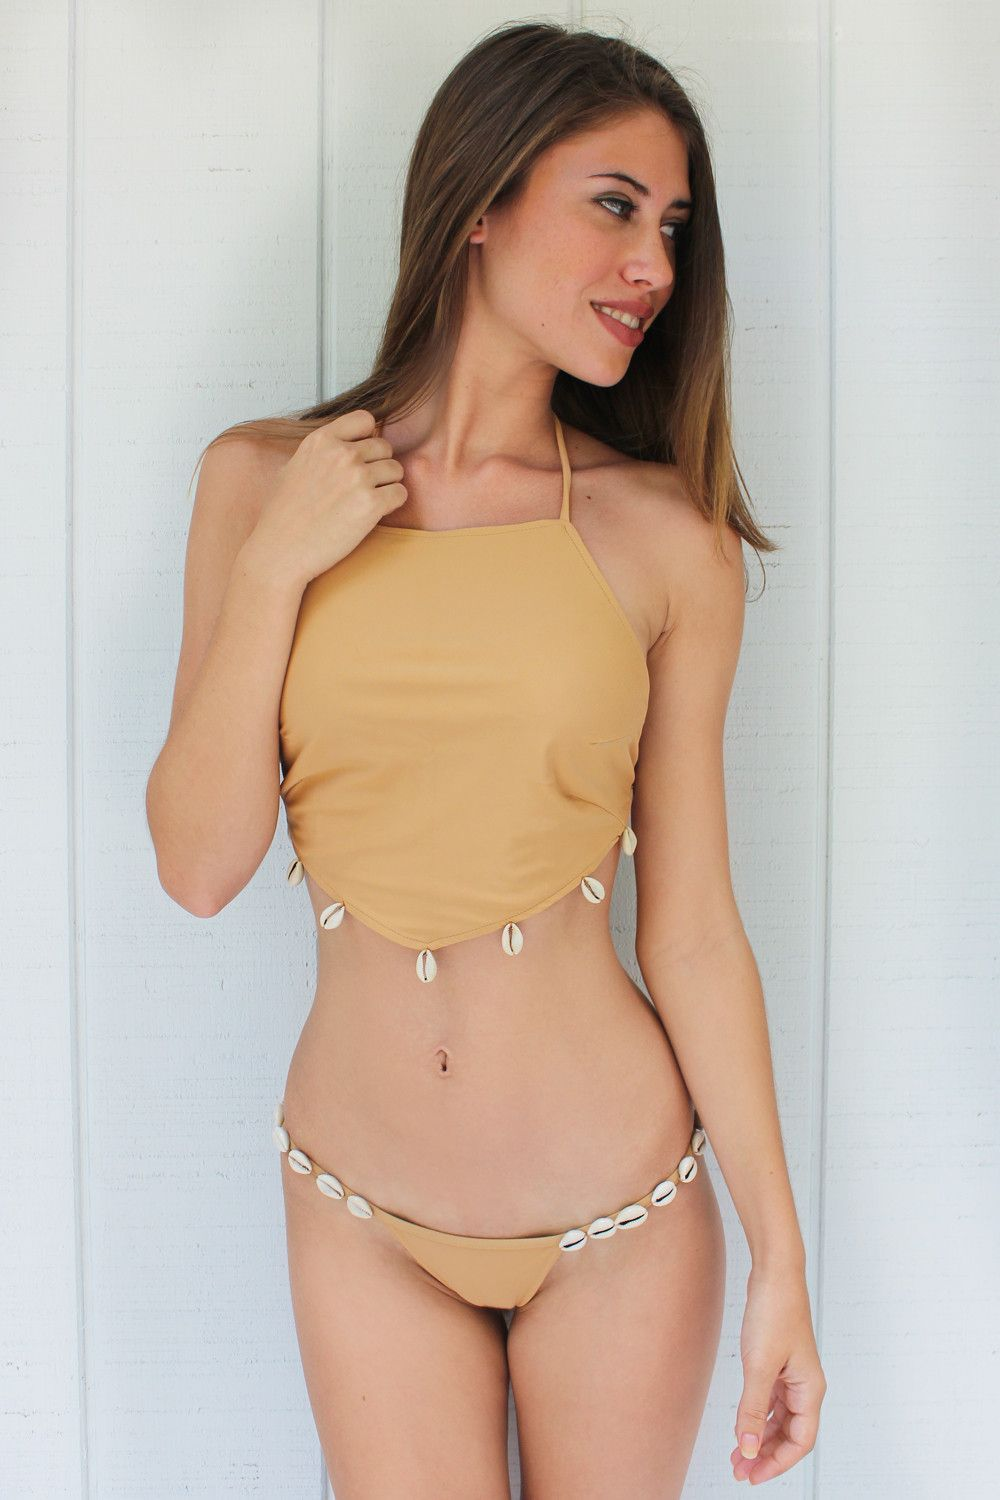 cb3e4e810b753 Kaohs Bikinis Rie Top in Sand It s all about neutral hues this season! The  Rie